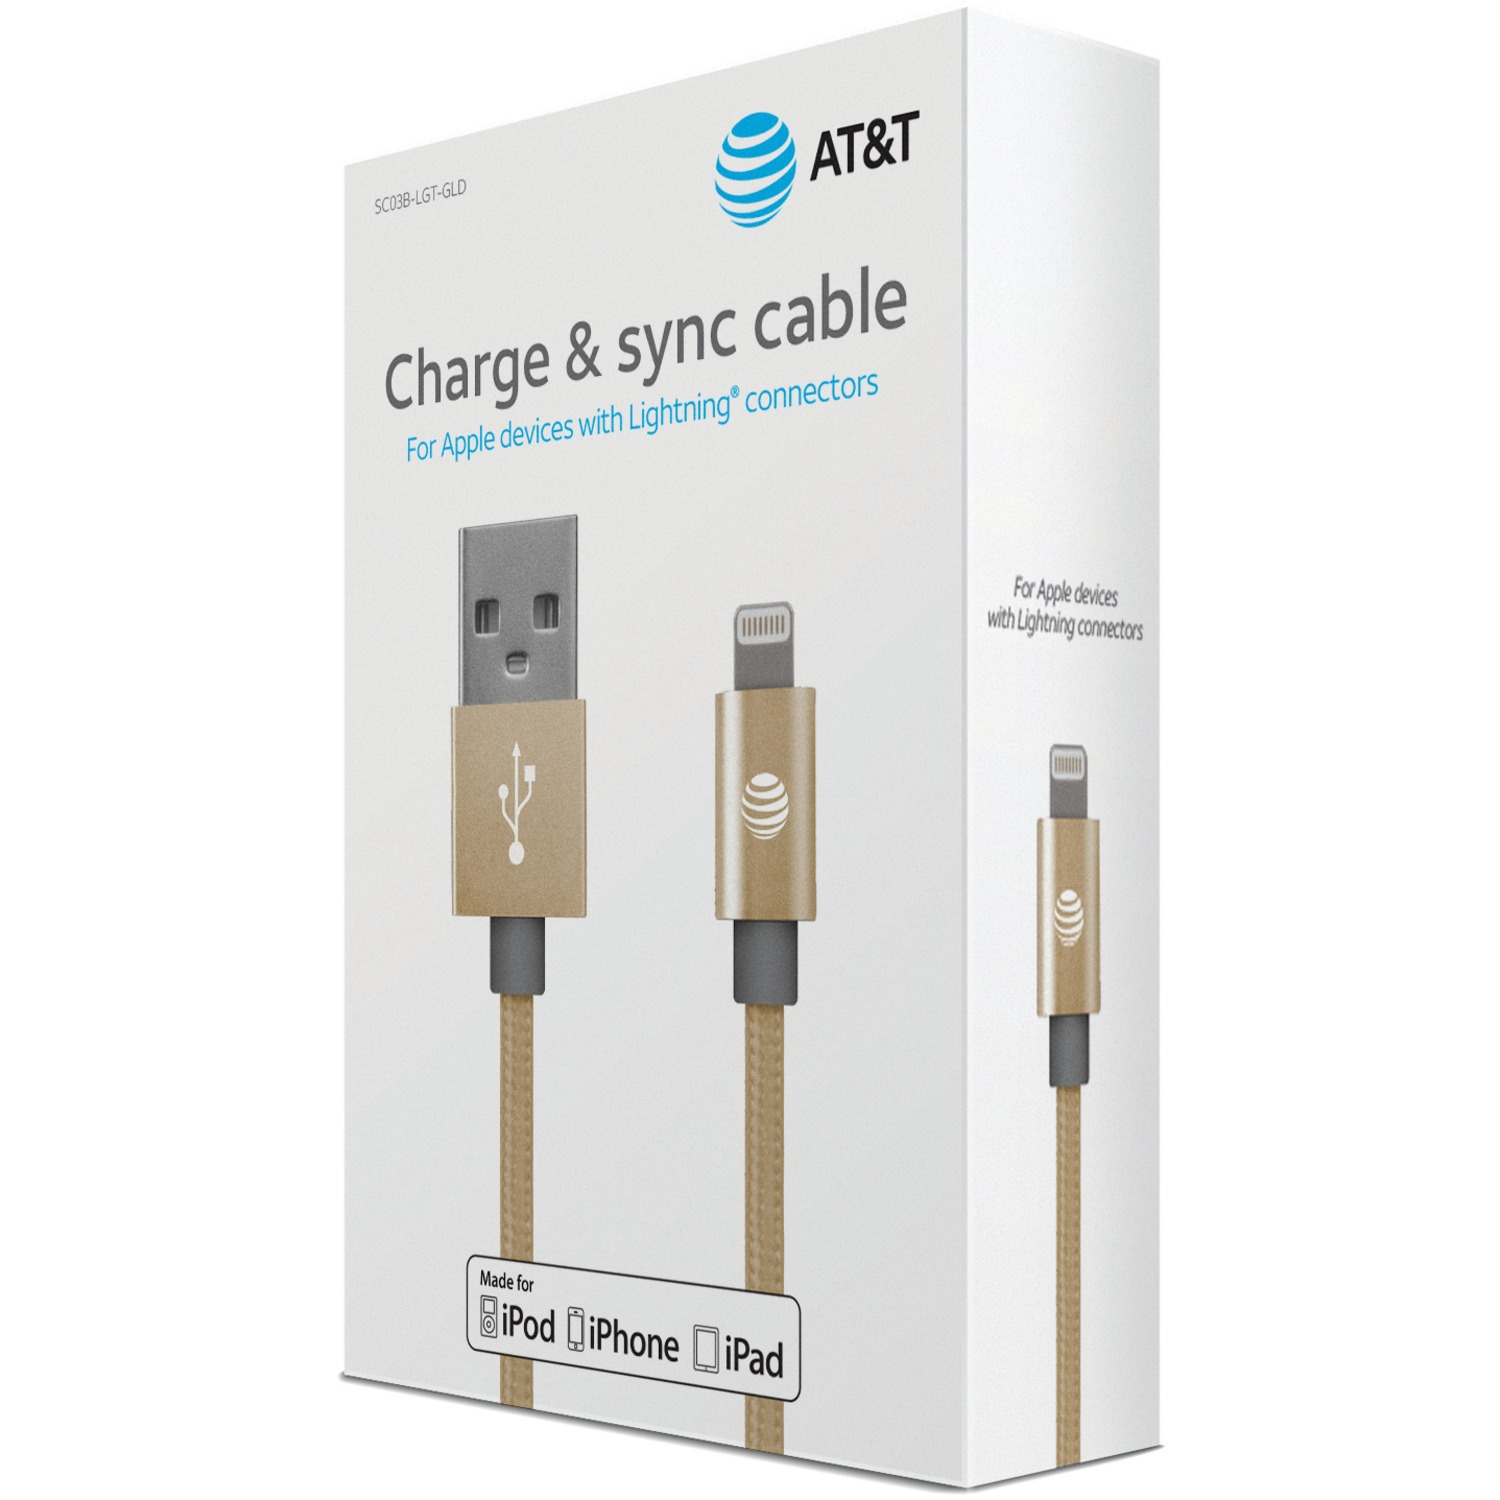 AT&T SC03B-LGT-GLD Charge & Sync Braided USB to Lightning Cable, 4ft (Gold)